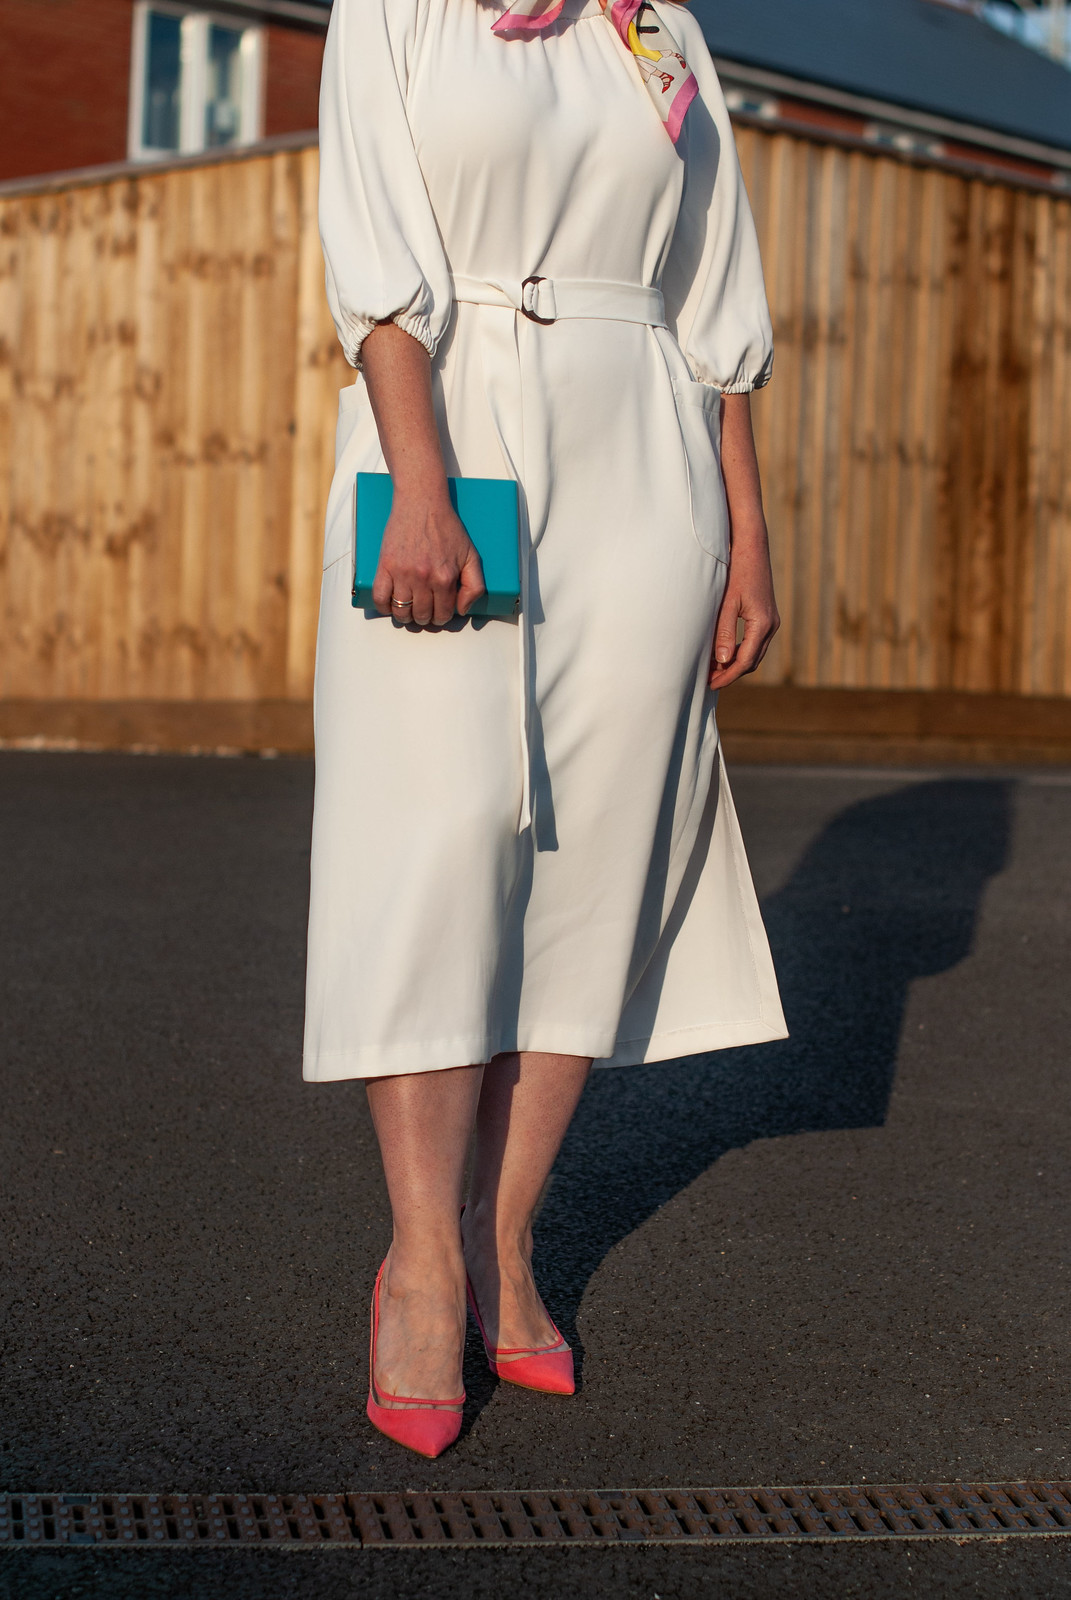 Finding Your Most Flattering Dress Silhouette: Elegant White Midi Dress with Heels | Not Dressed As Lamb, Over 40 Fashion and Style